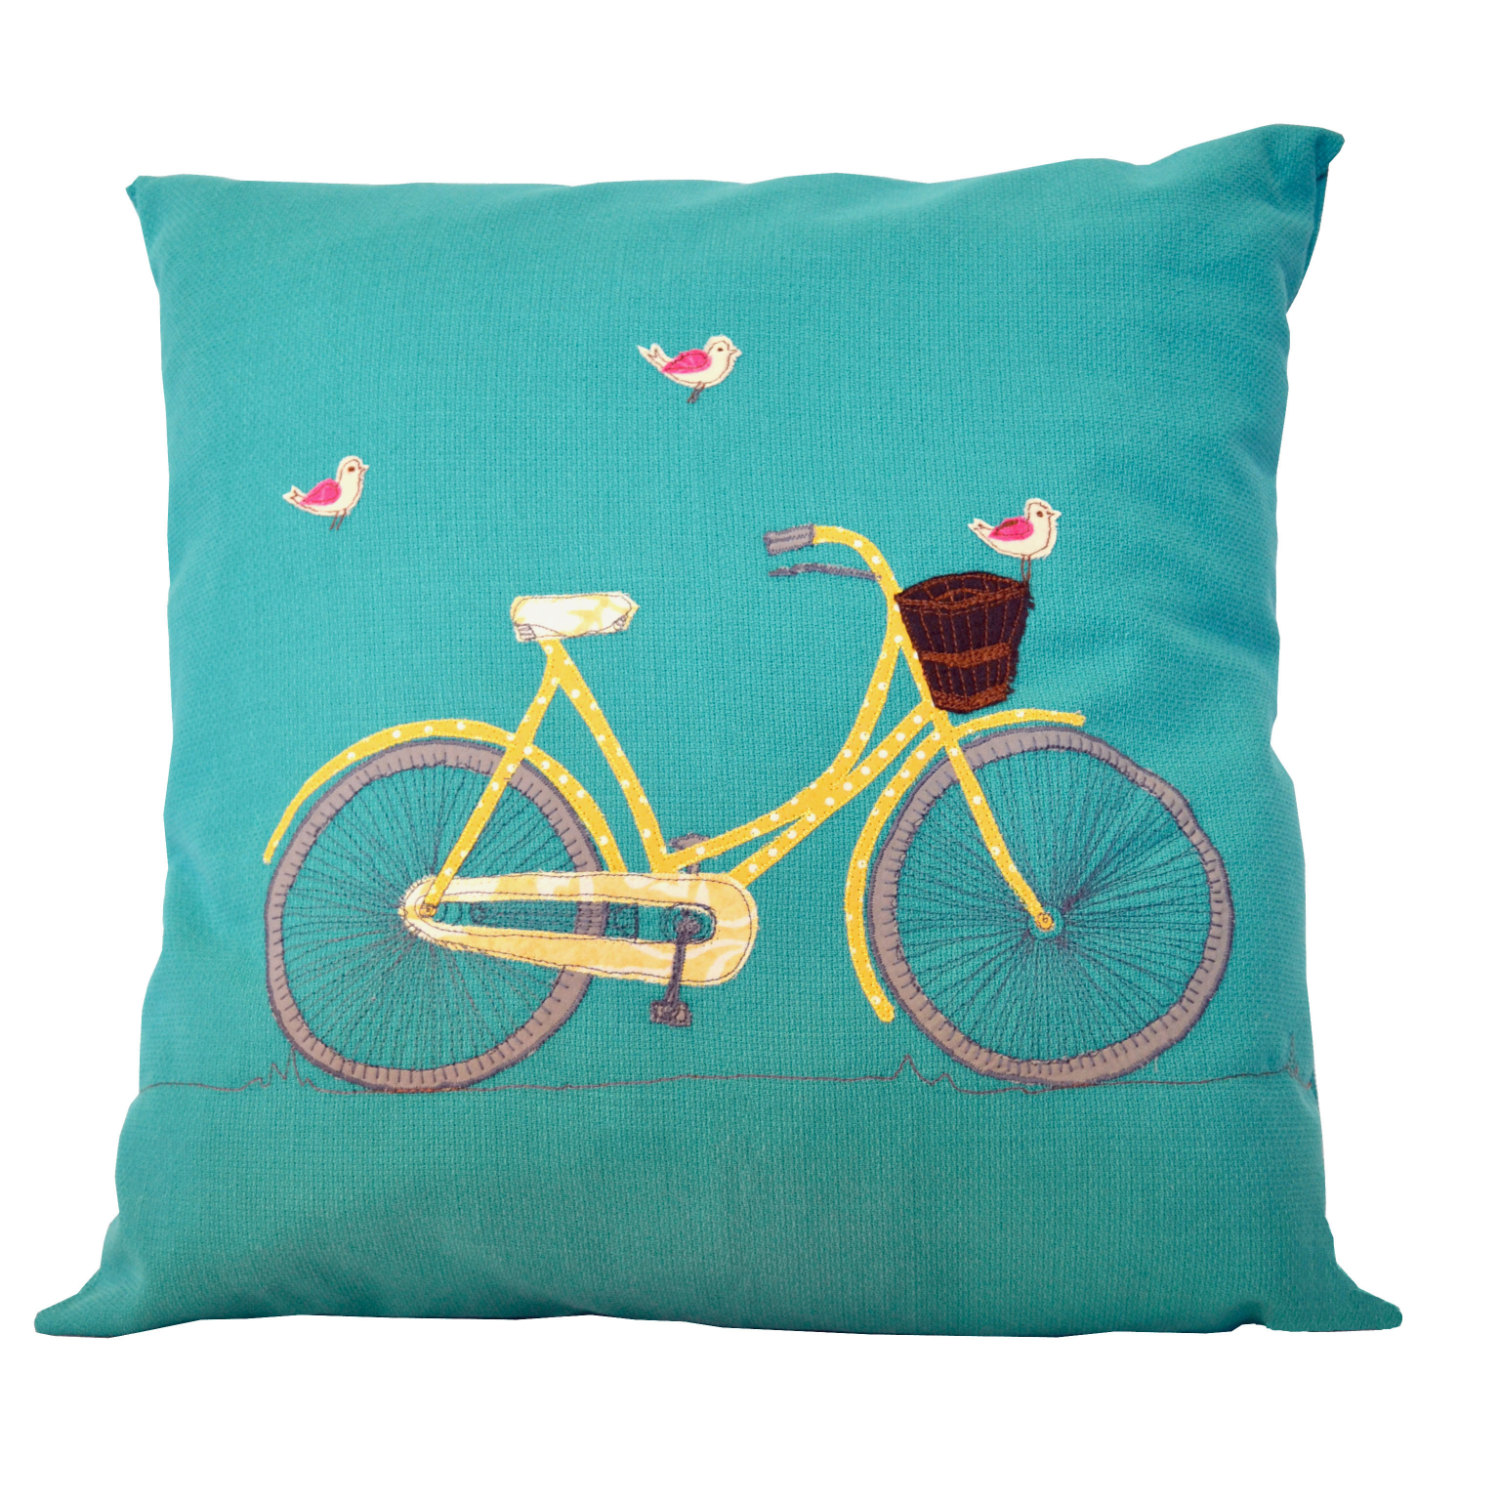 Beautiful pillow design ideas with 19 example pics all Pillow design ideas